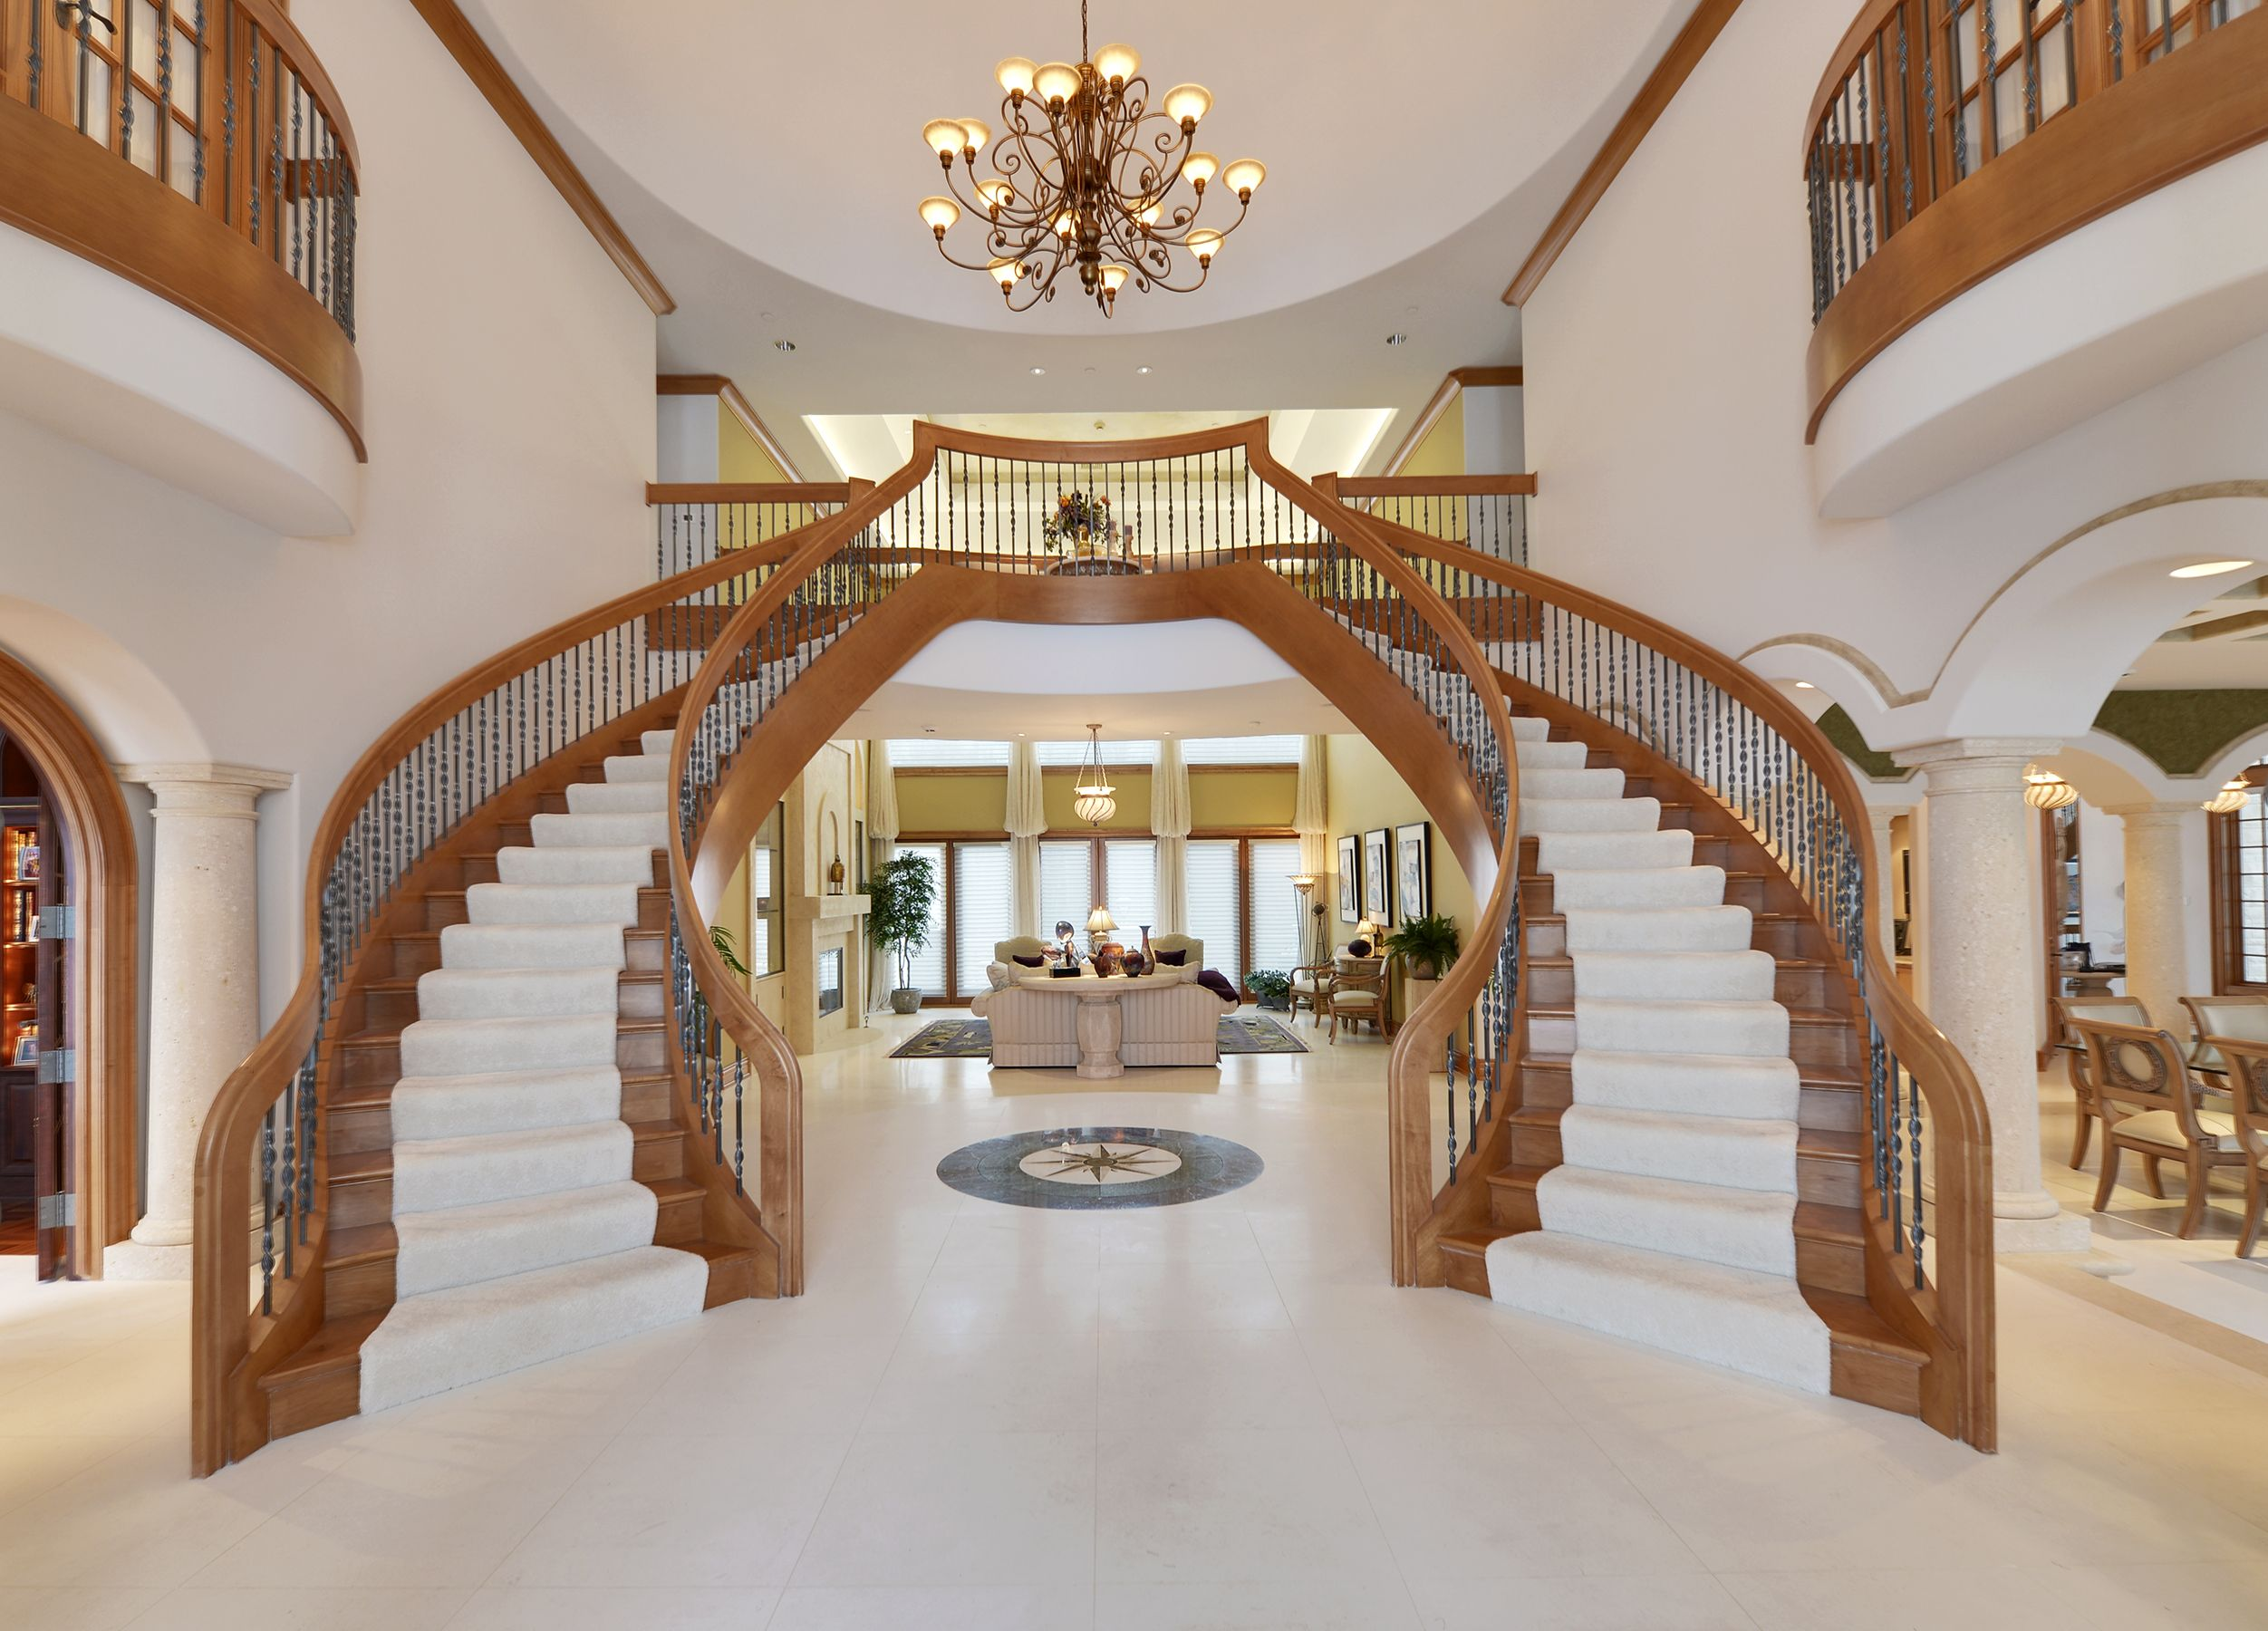 Dual staircase in grand foyer luxury homes pinterest for Foyer staircase decorating ideas